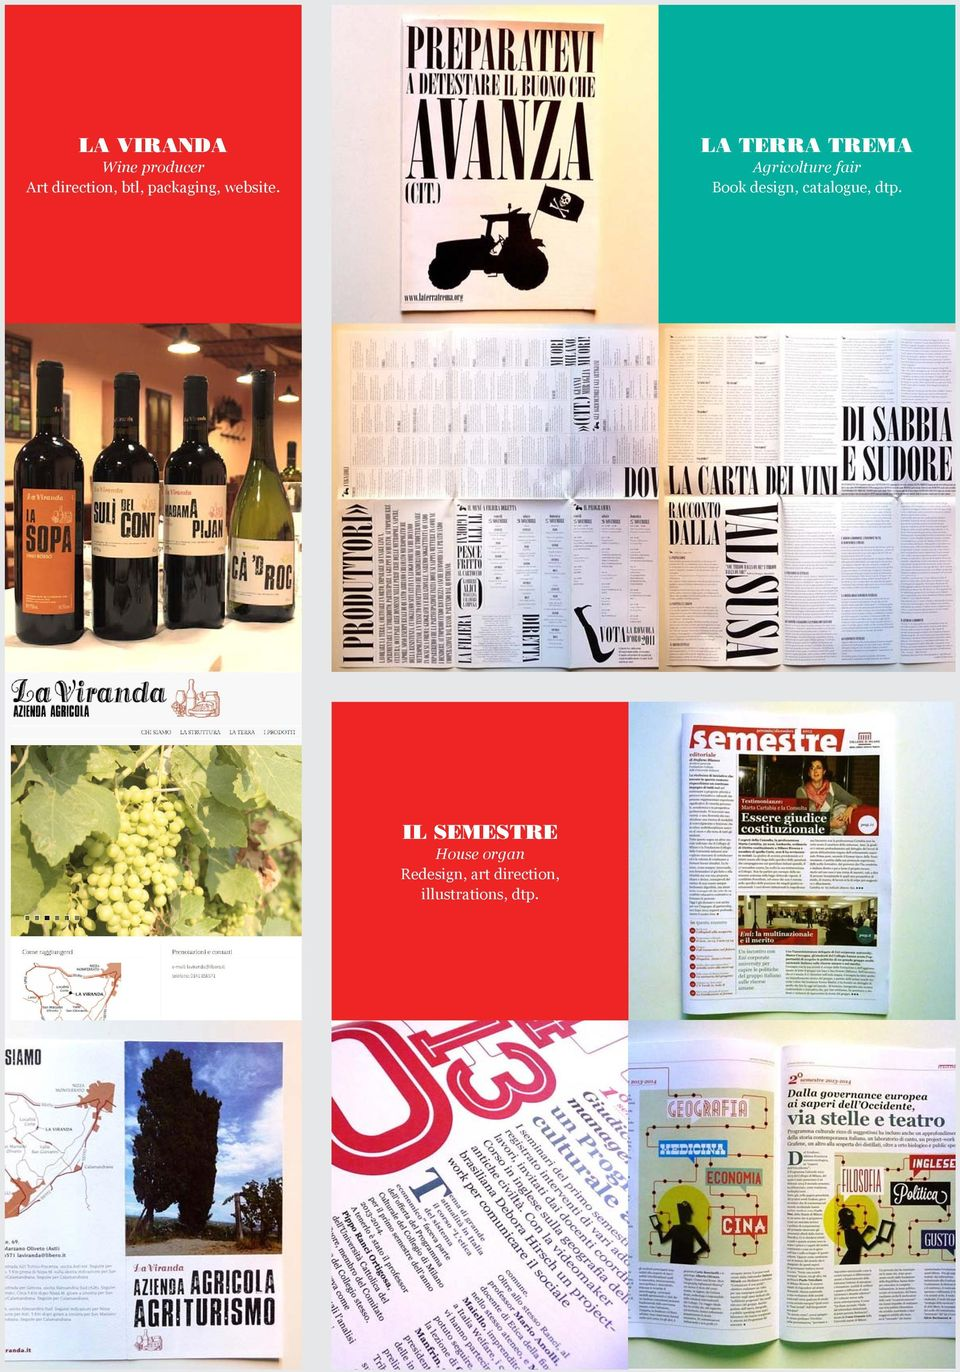 LA TERRA TREMA Agricolture fair Book design,